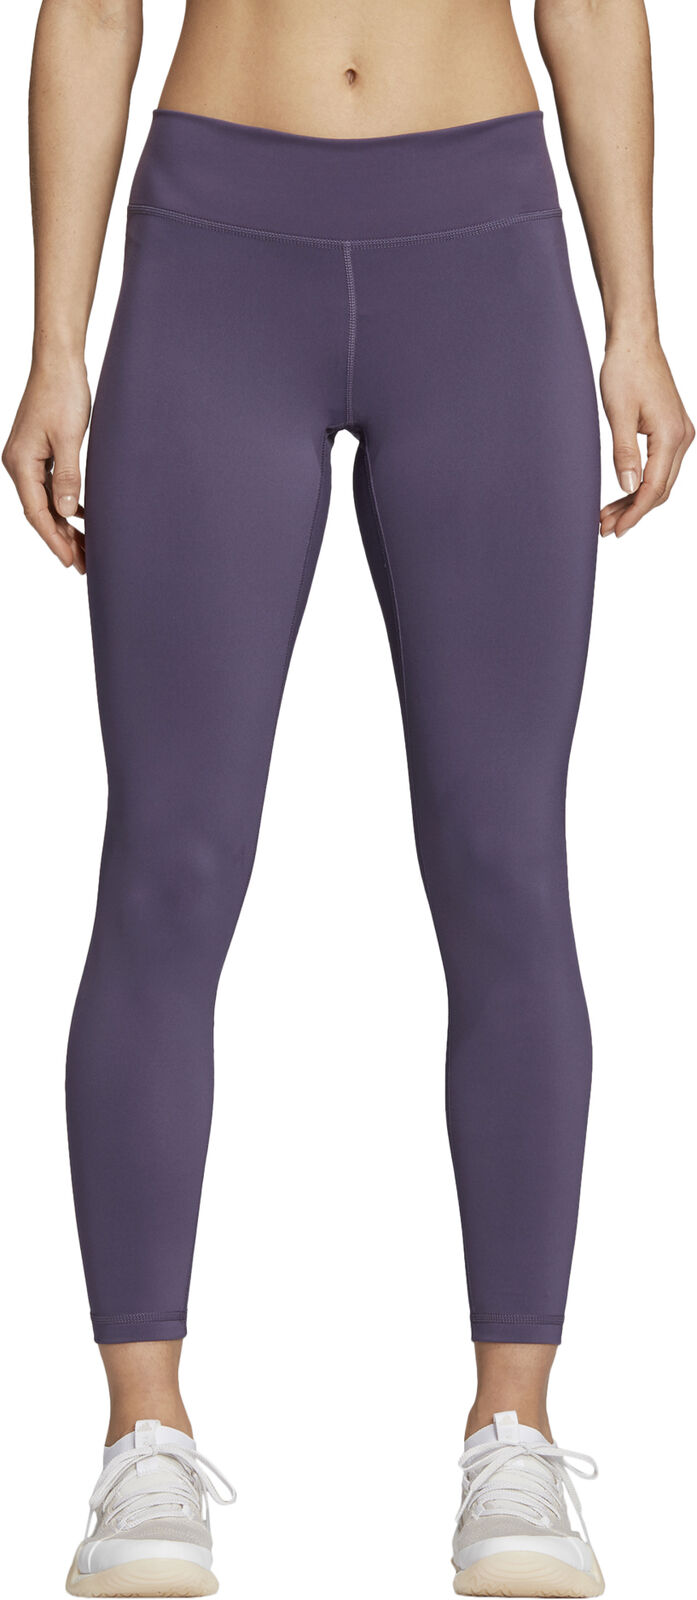 Adidas Believe This RR Womens 7 8 Running Tights - Purple